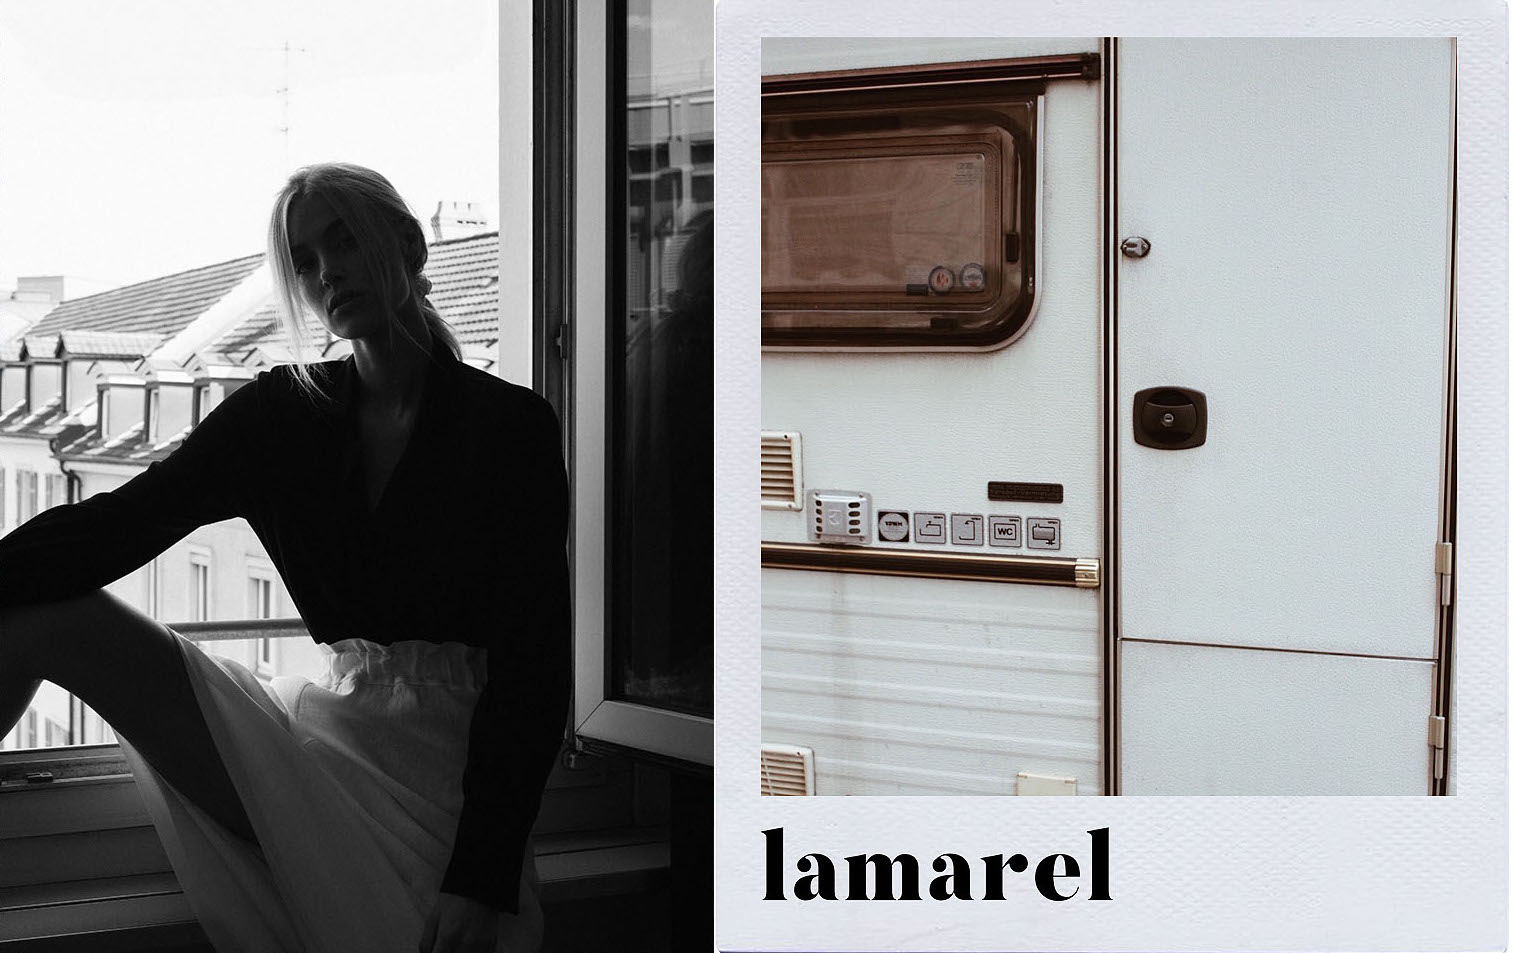 WE WANT YOU TO BE HAPPY - contact@shoplamarel.com